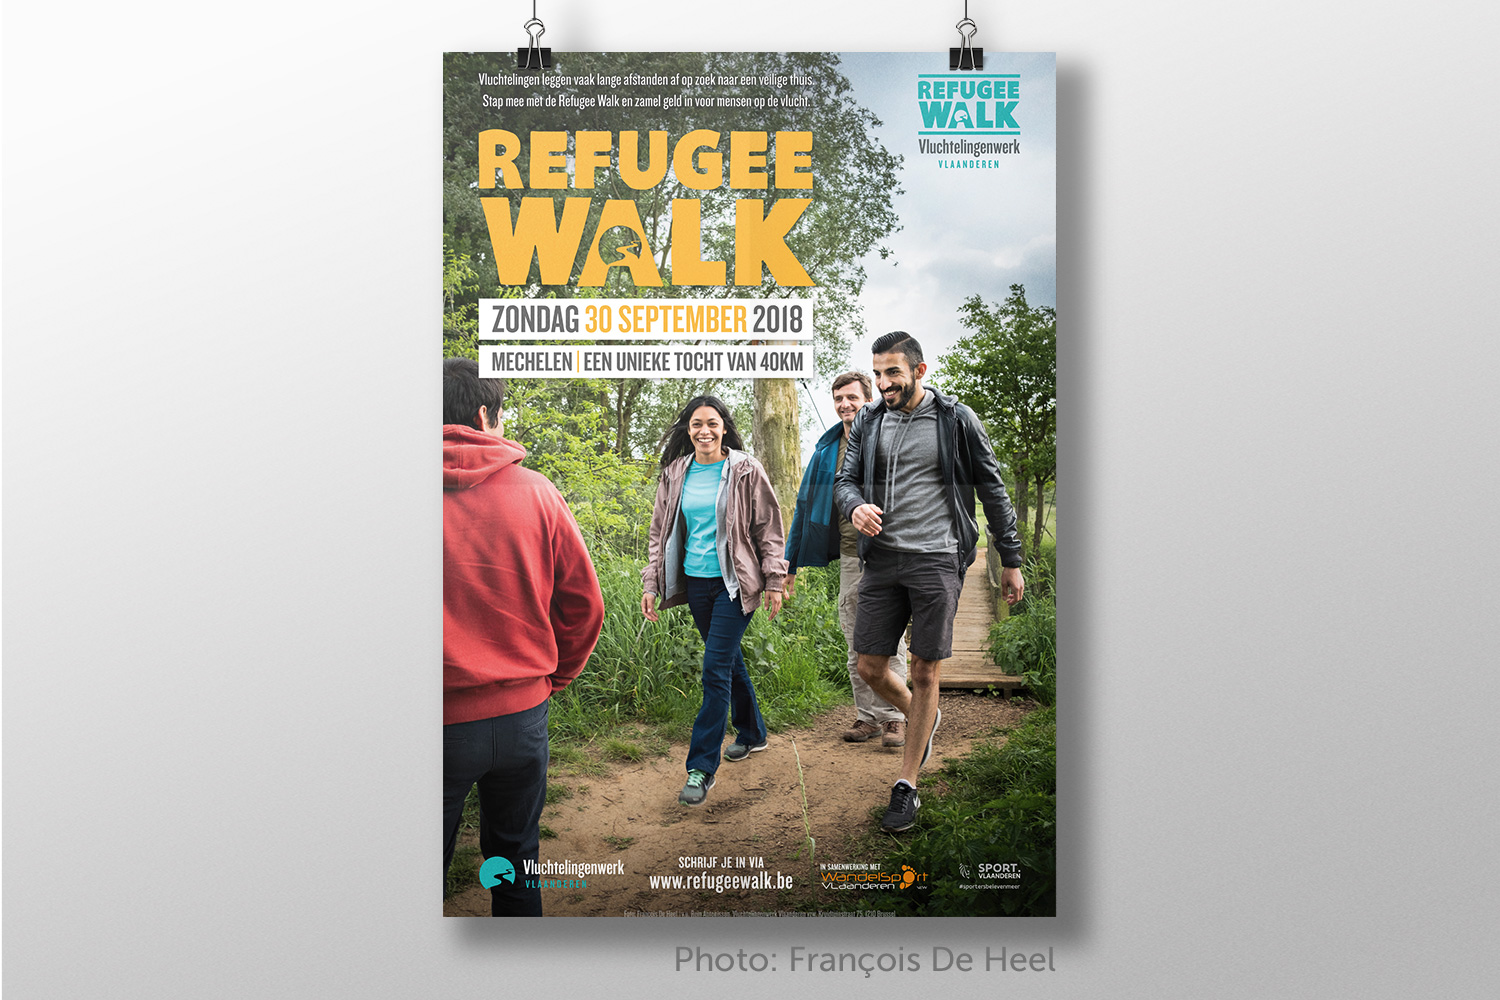 Greyclouds.be - Bert Blondeel | Design for print: poster - Refugee Walk 2018 (photo by Francois De Heel)